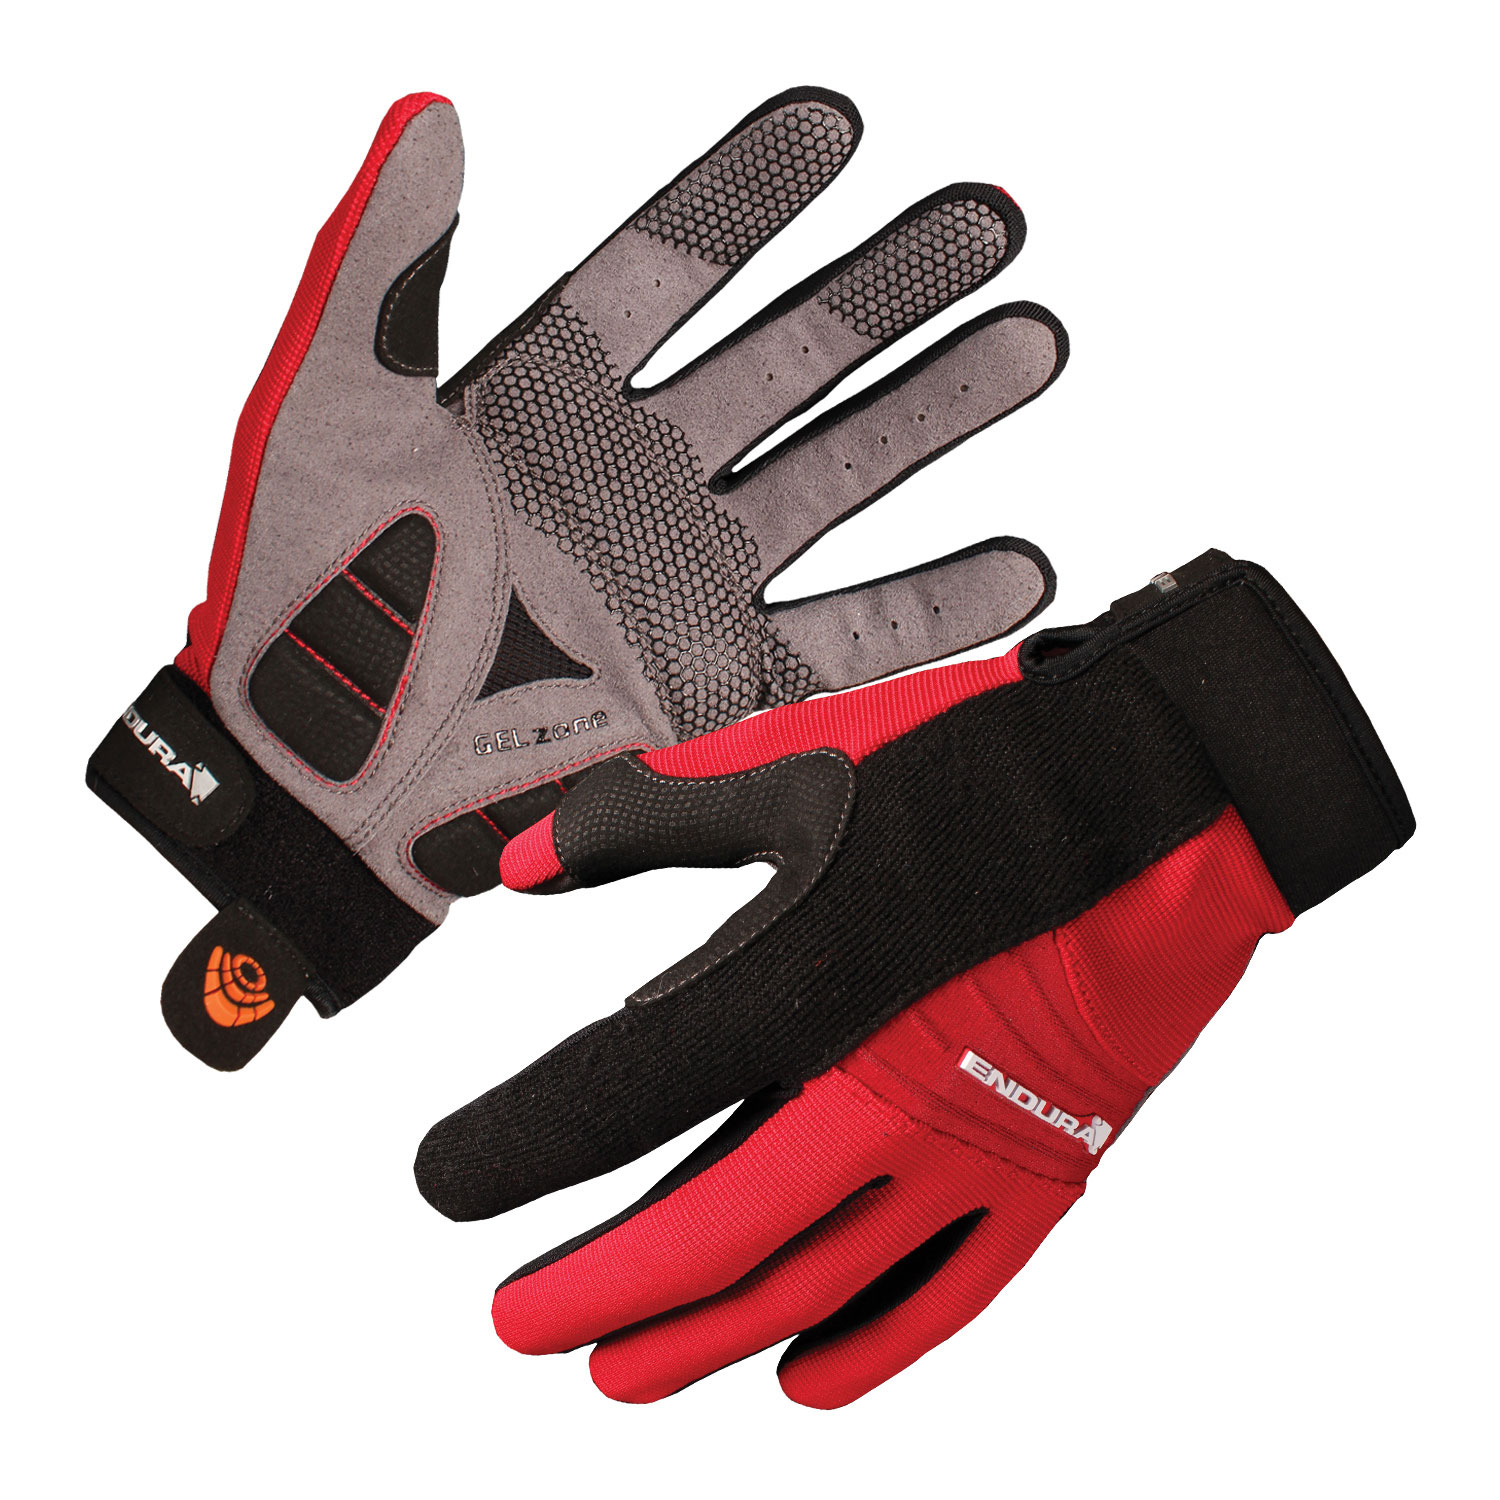 Full Monty Glove Red